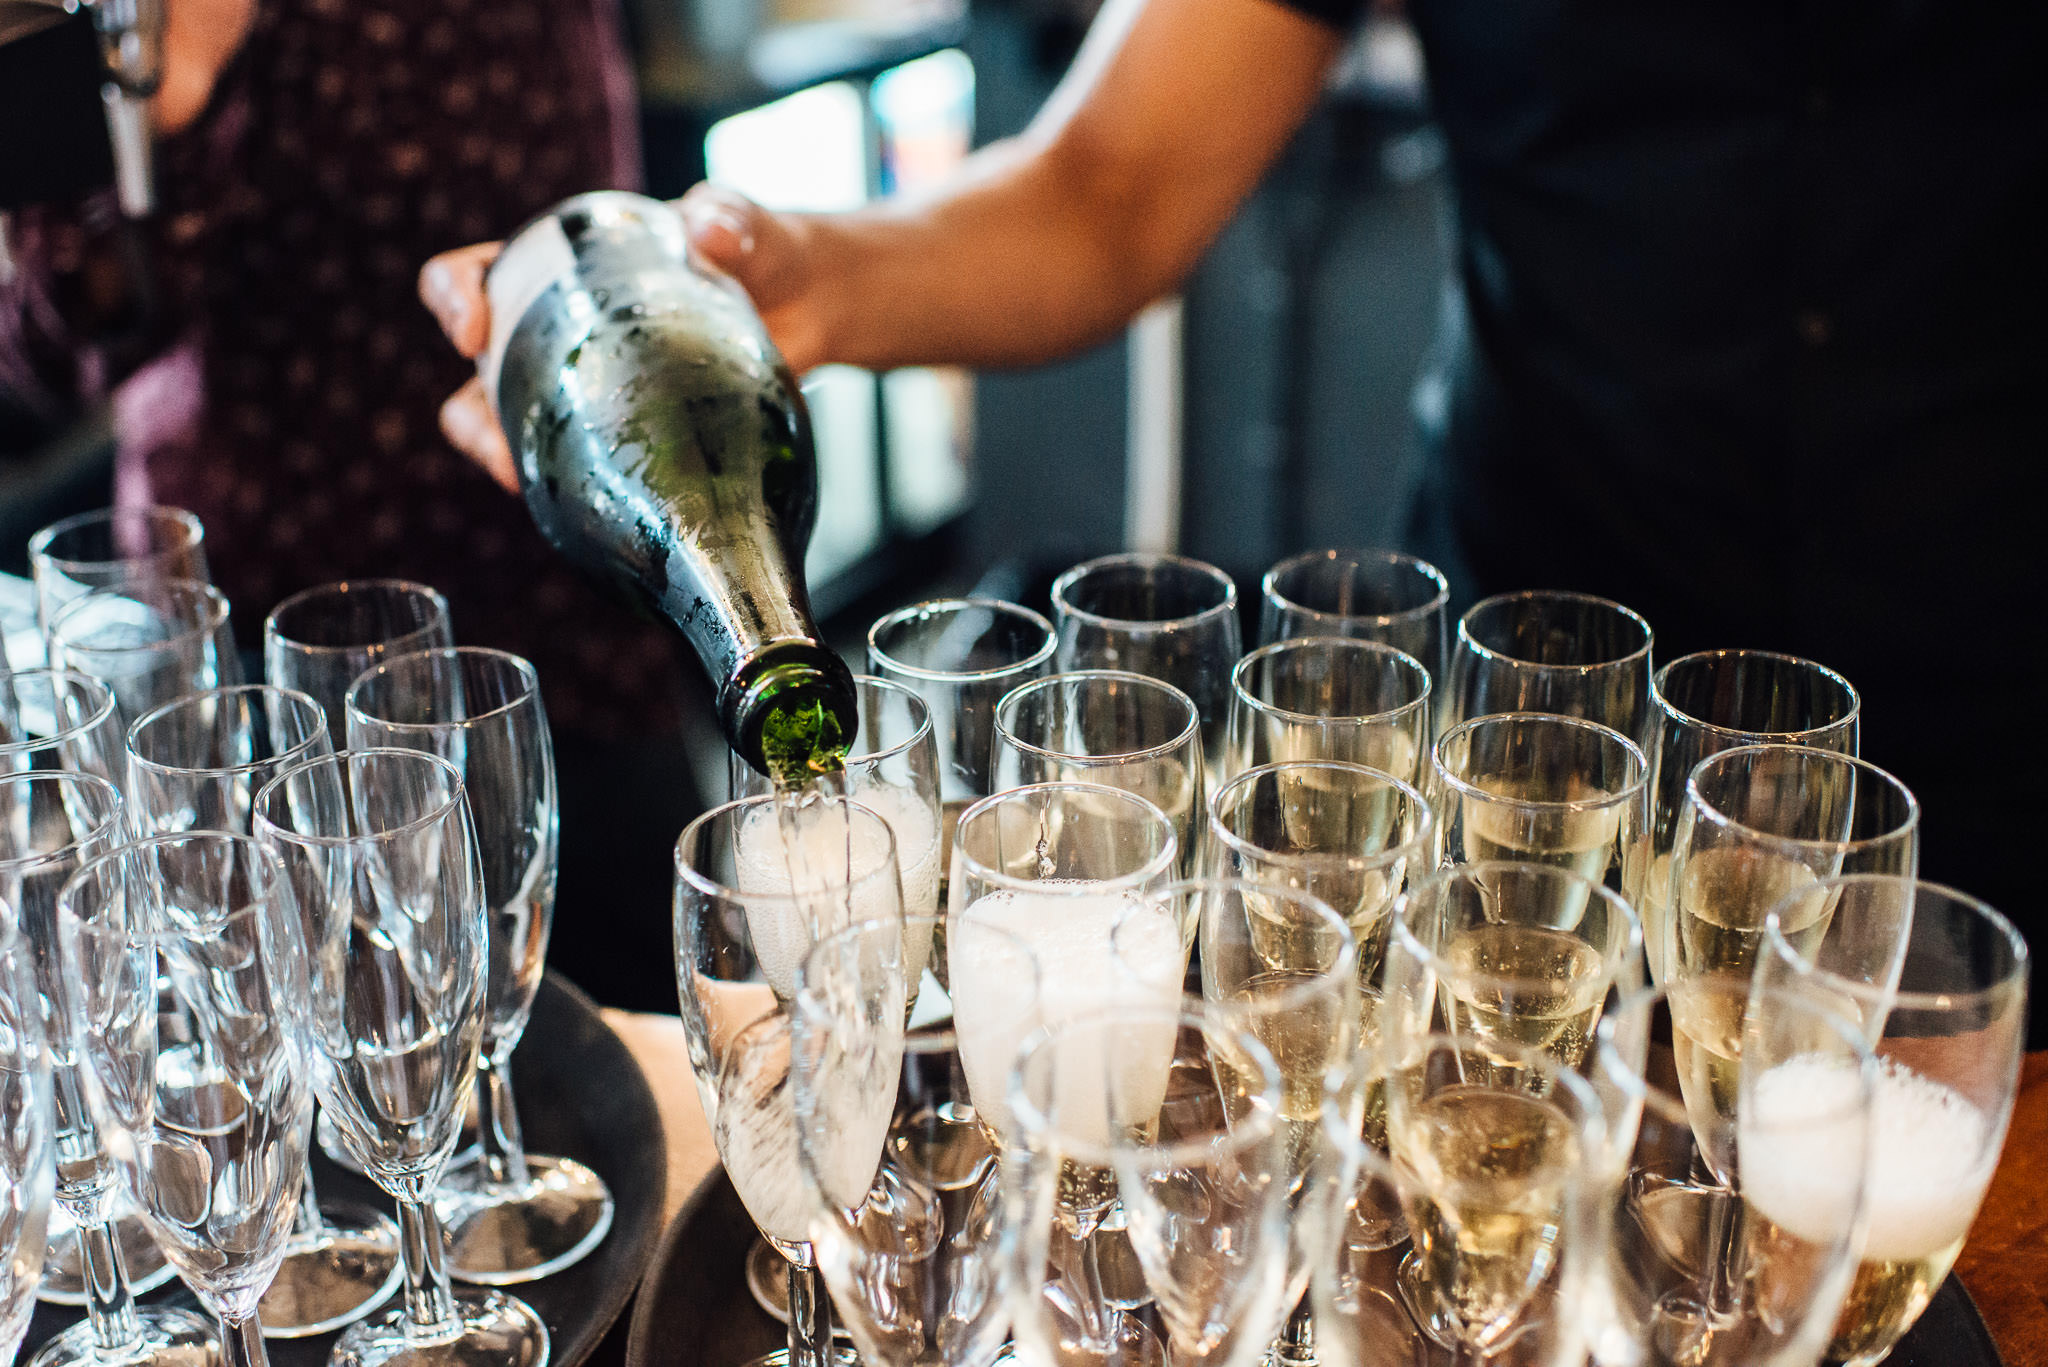 Champagne reception in the londesborough pub in stoke newington town hall wedding by creative and alternative london wedding photographer the shannons photography